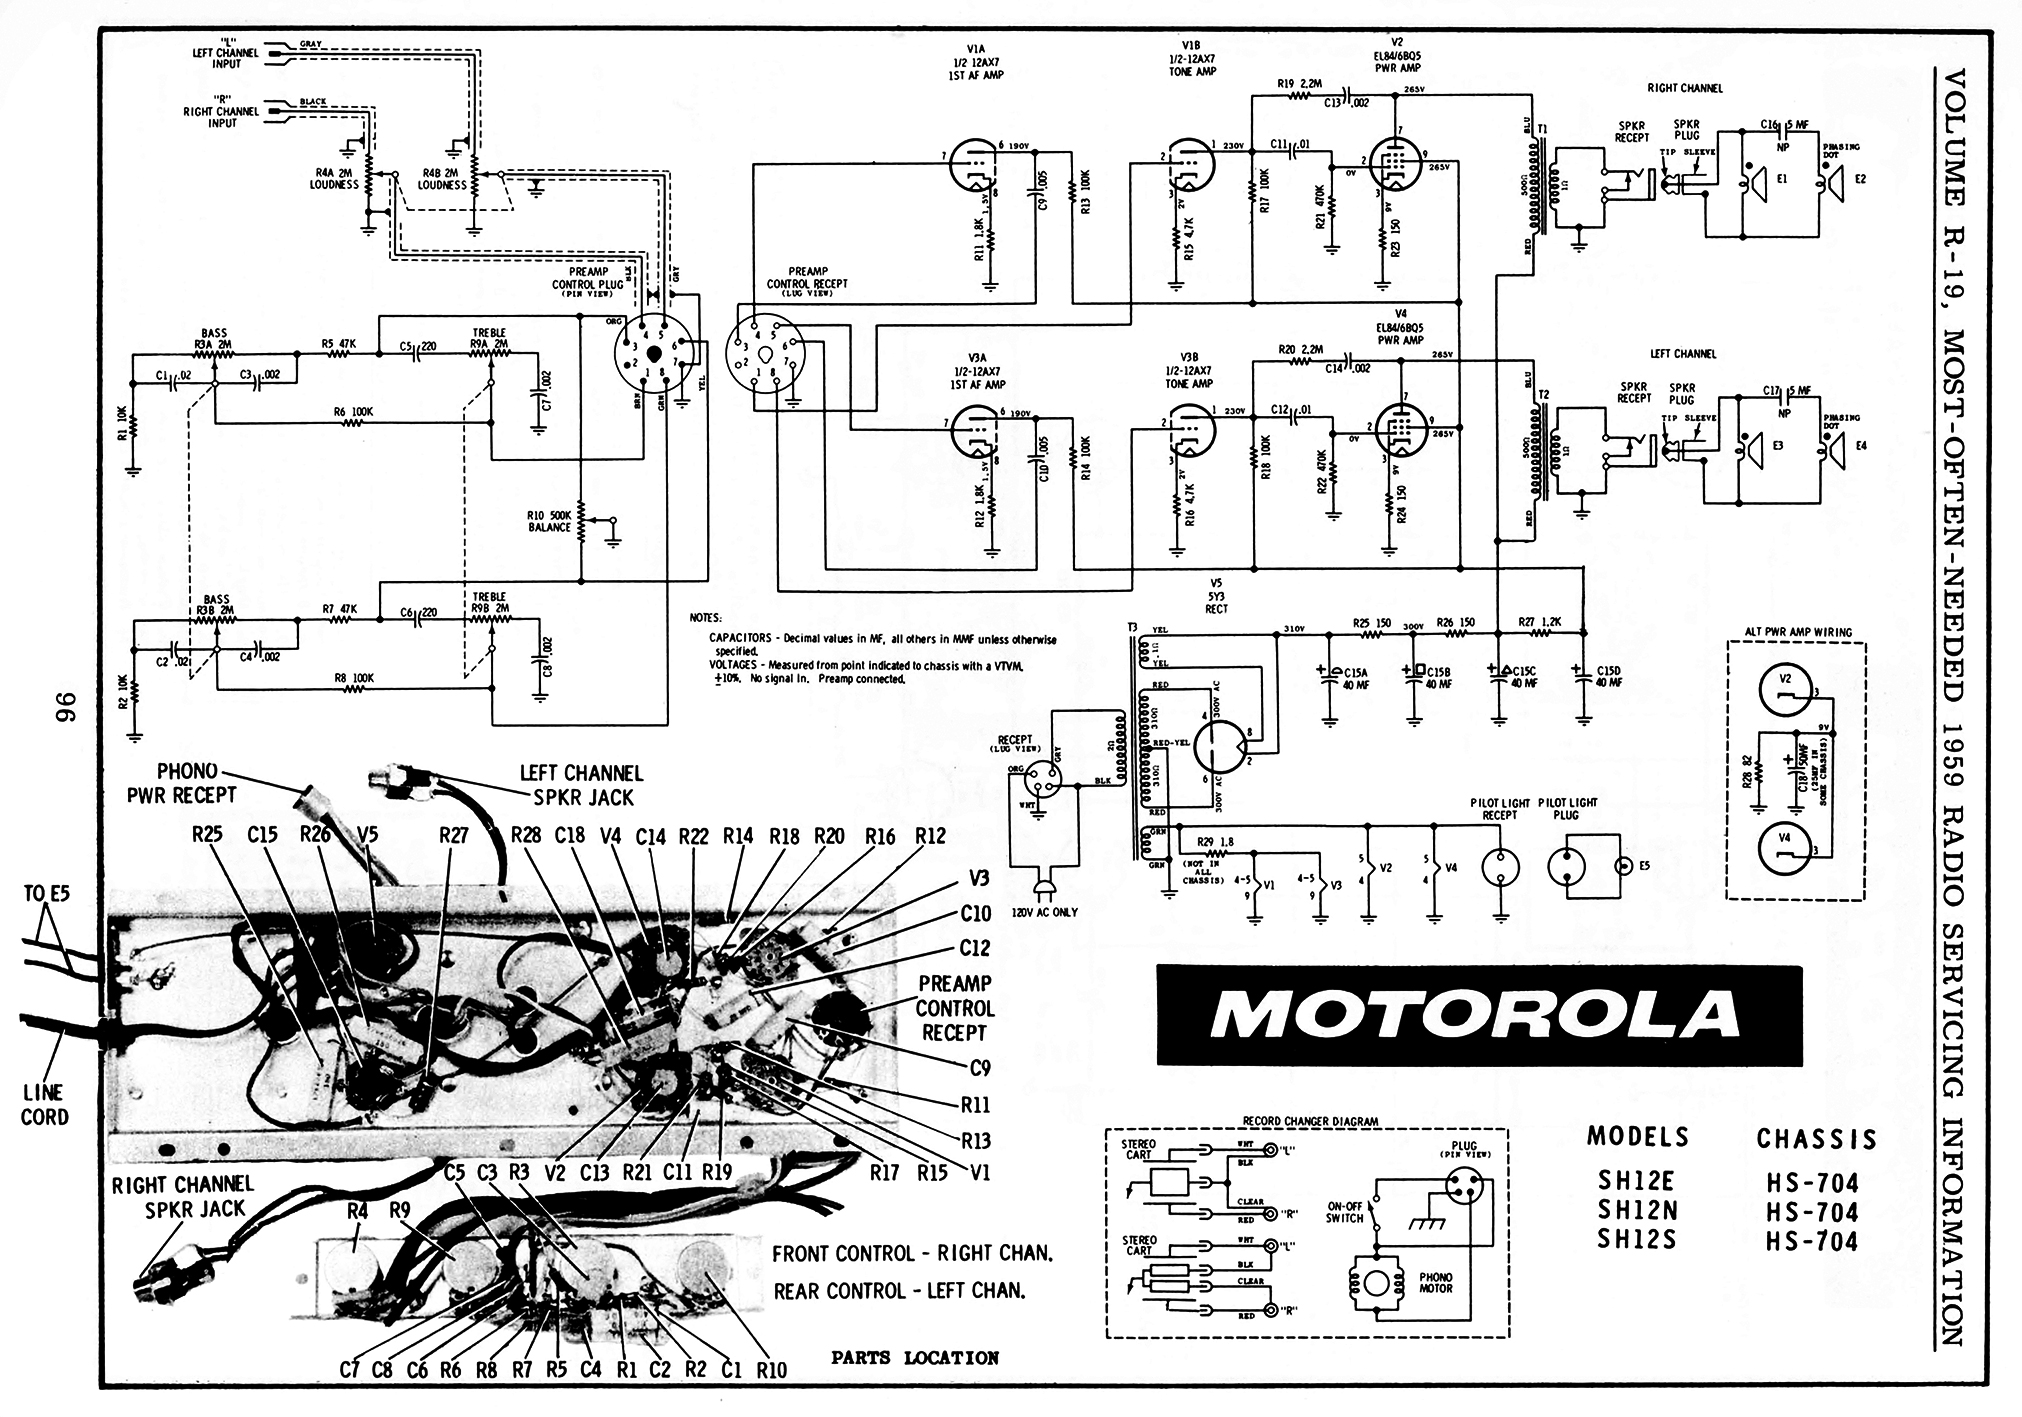 Mini Phono Plug Wiring Diagram